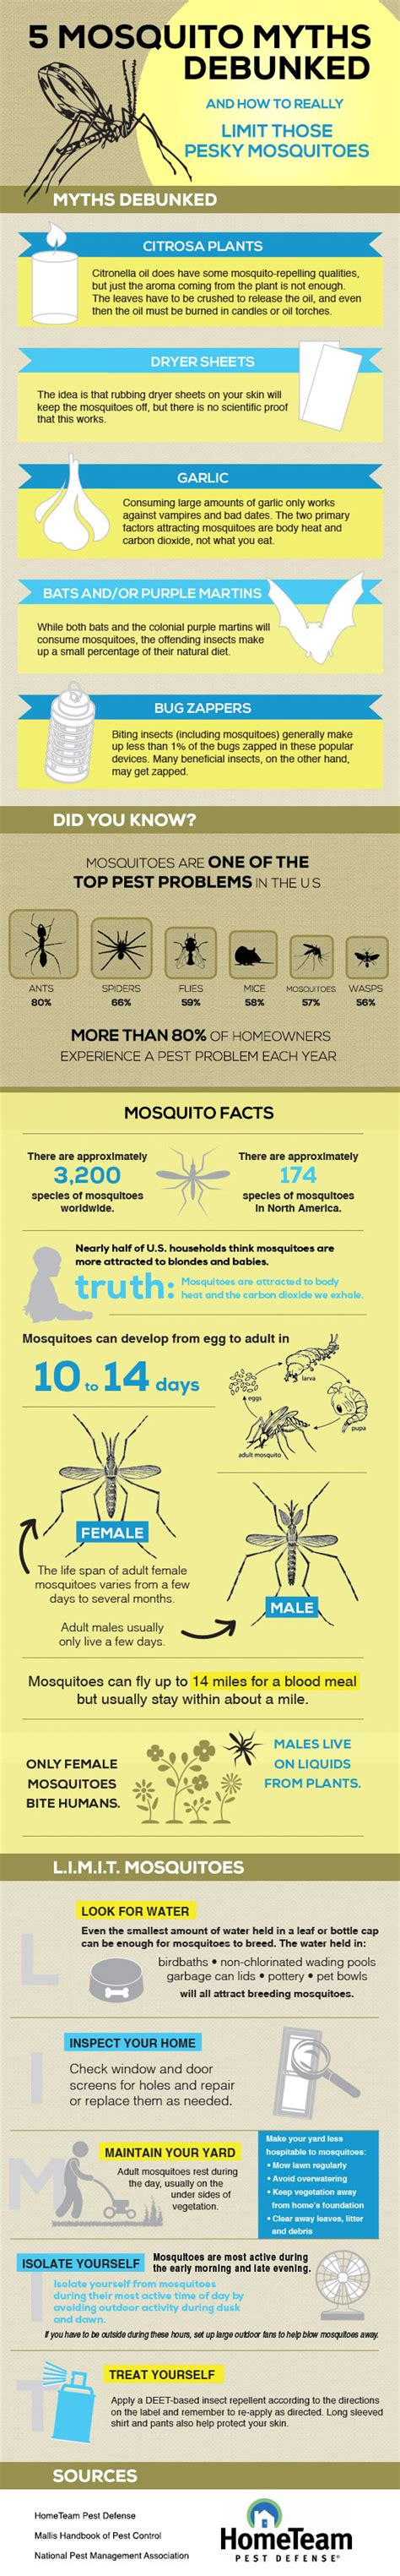 5 mosquito myths debunked and how to really limit those